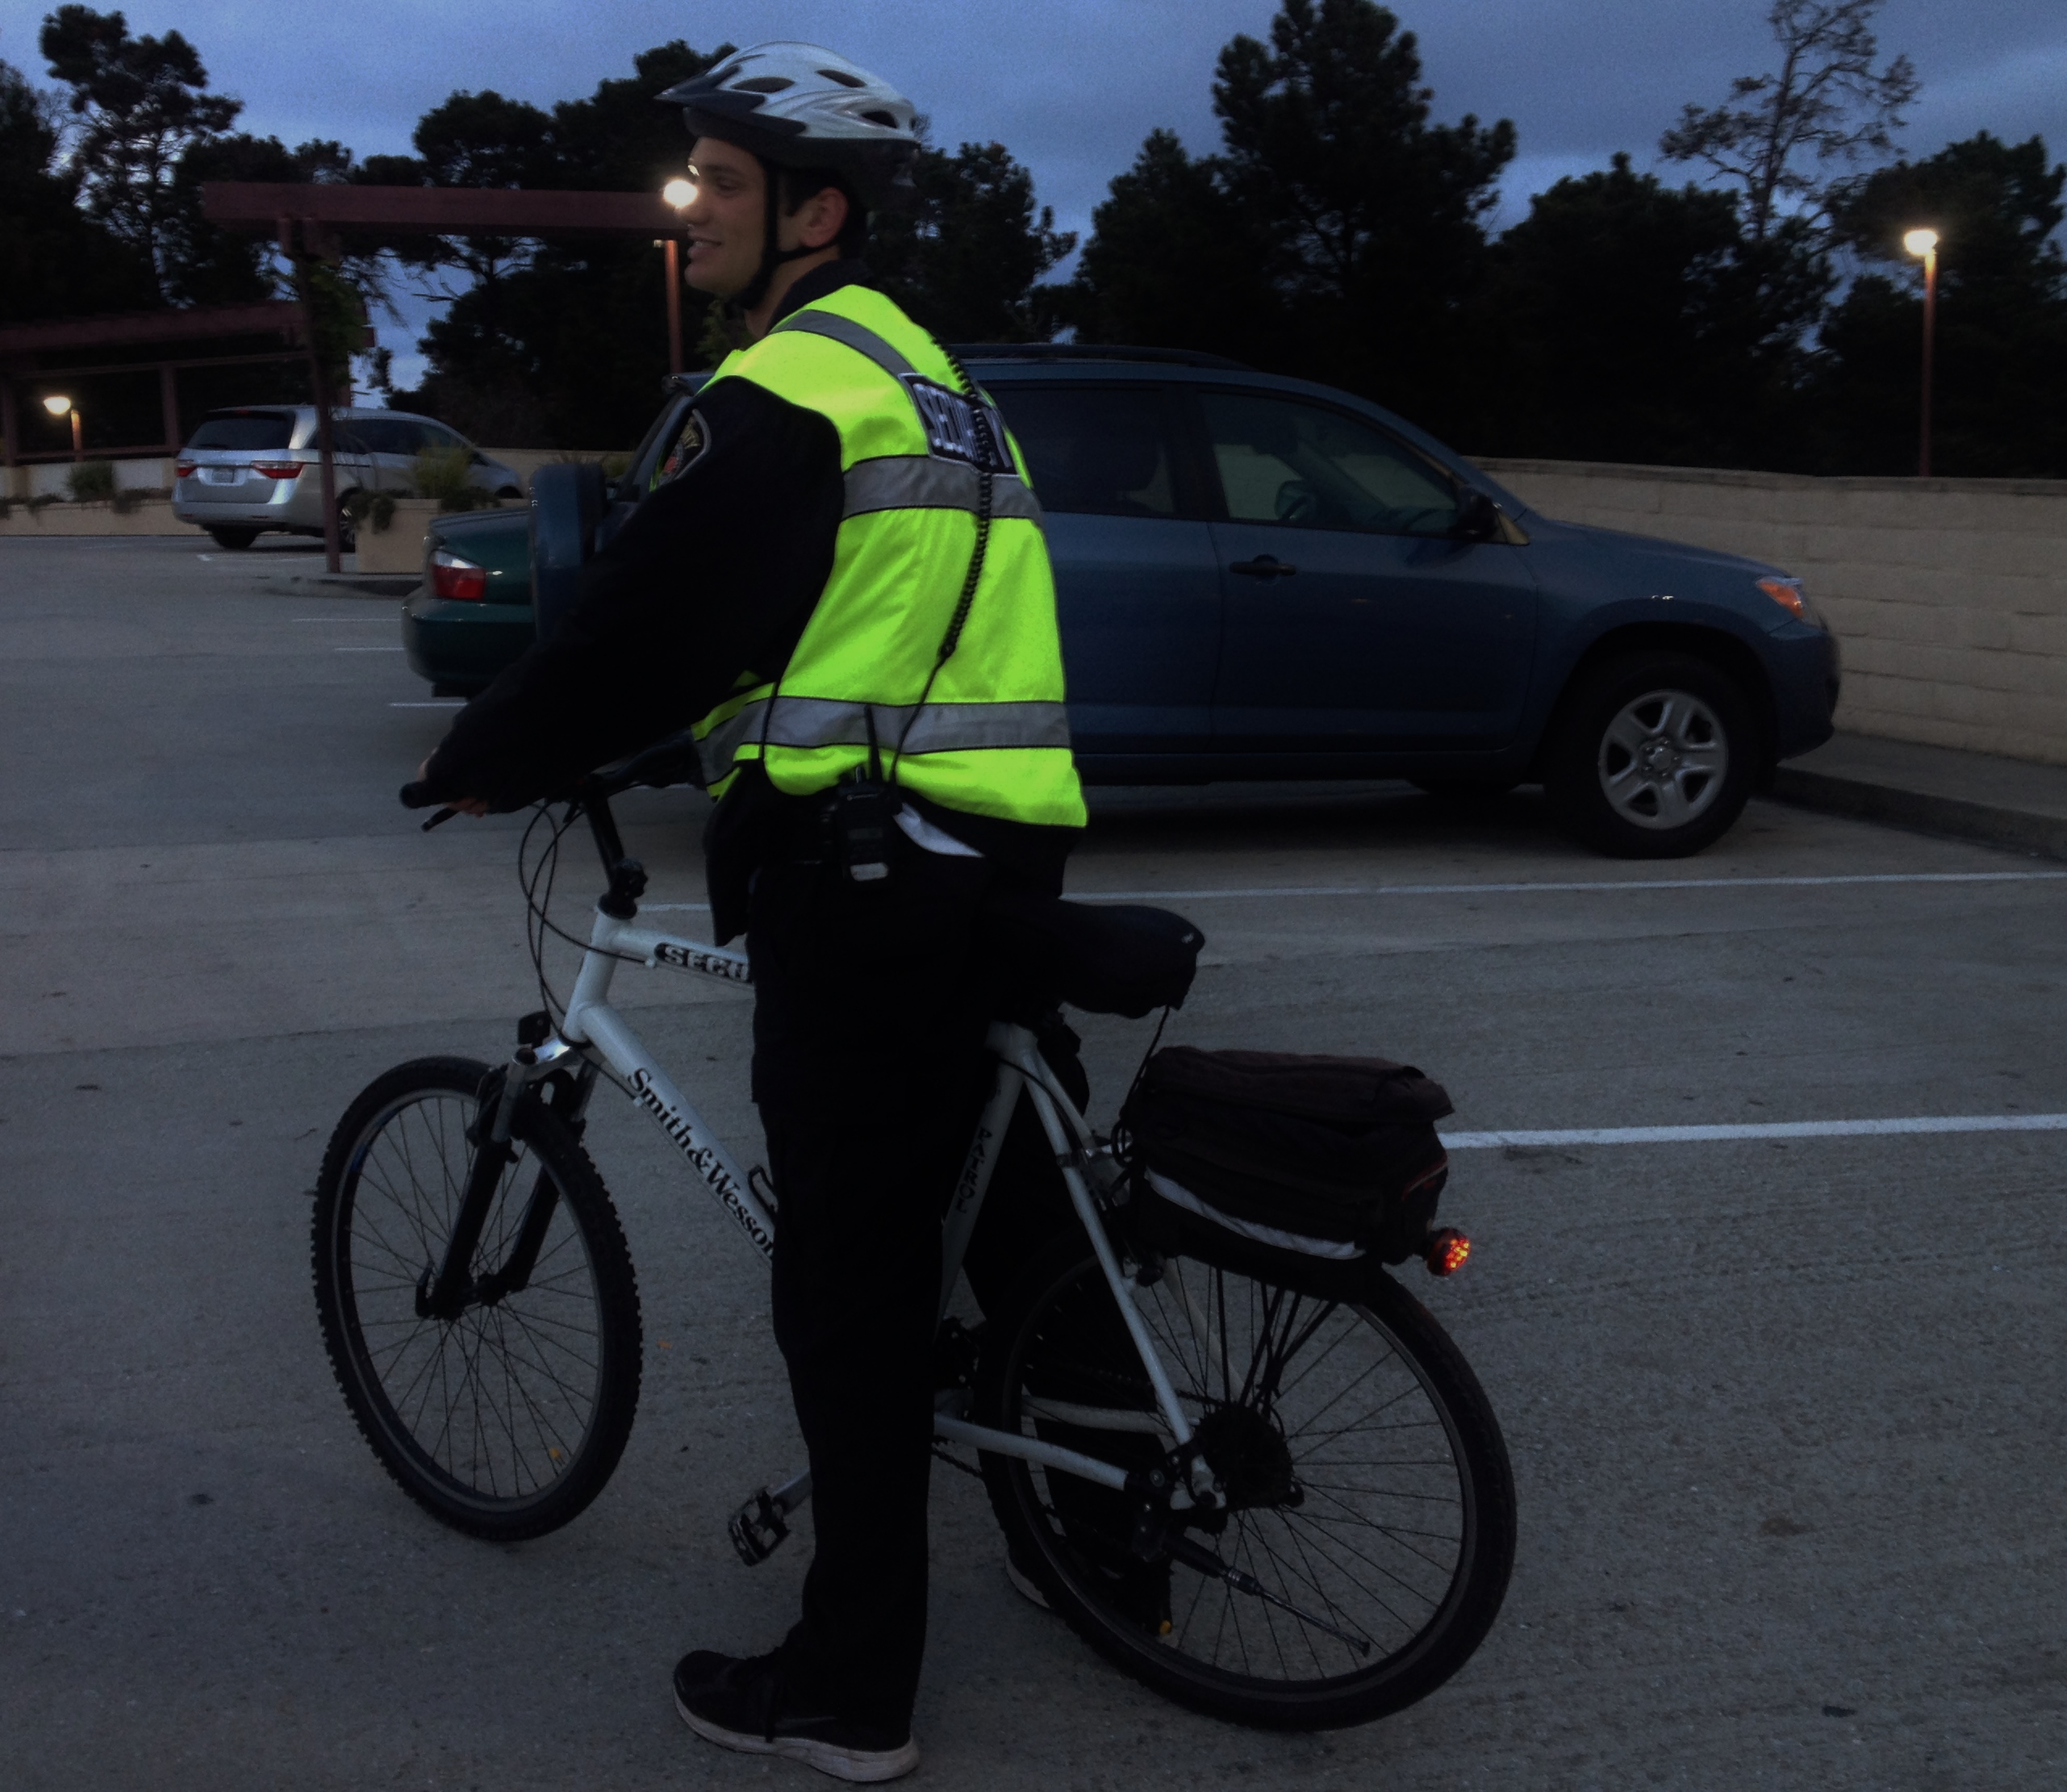 Del Monte Shopping Center >> 19. Night Rides / Biking in the Dark | Bicycling Monterey | Resources for Anywhere & Info Hub ...